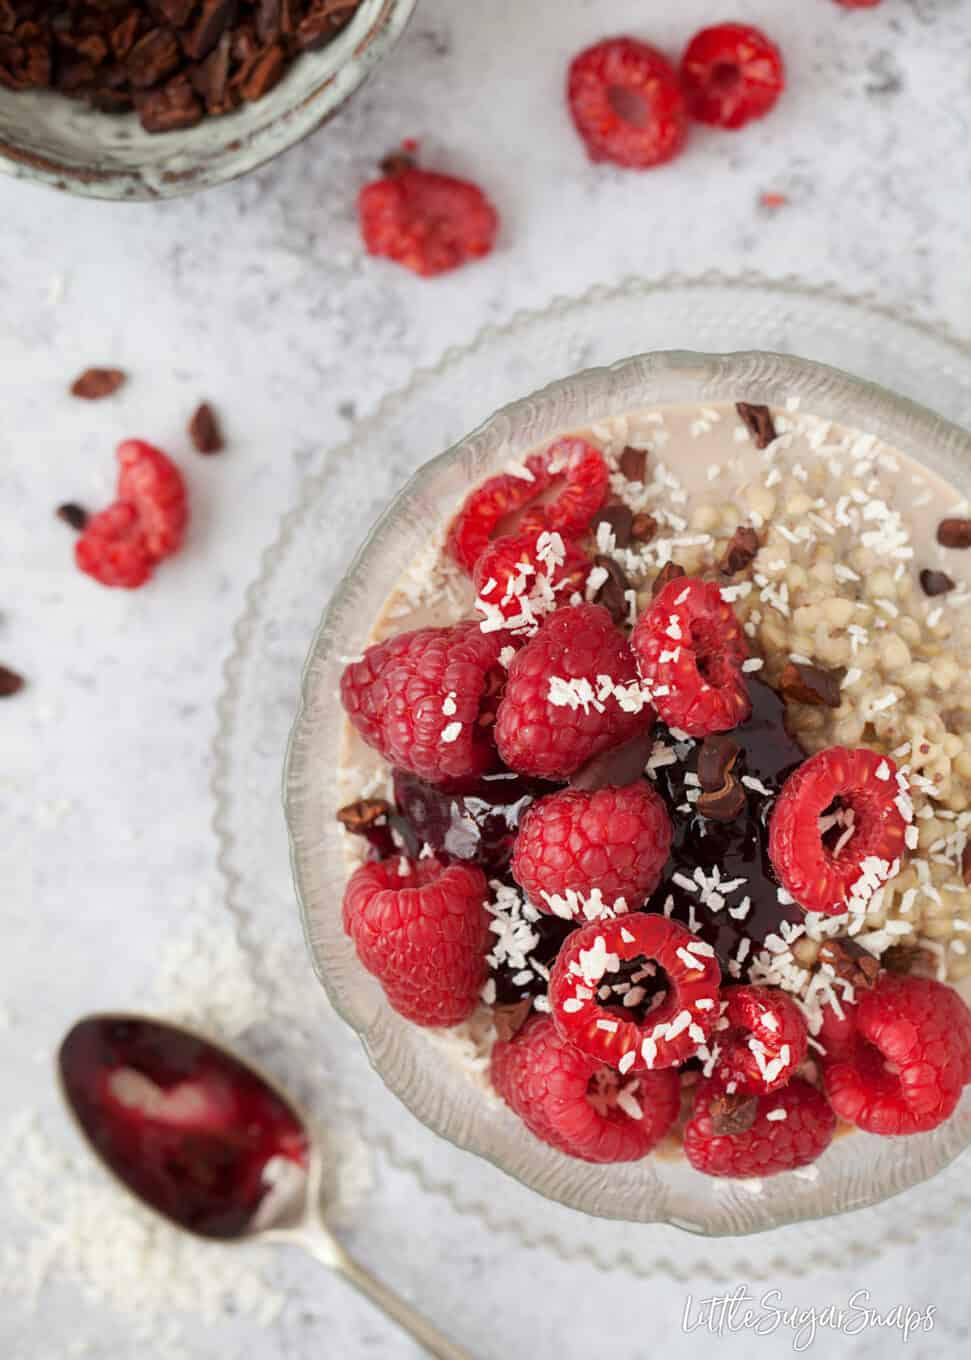 A bowl of buckwheat porridge with fruit compote, raspberries, cacao nibs and coconut